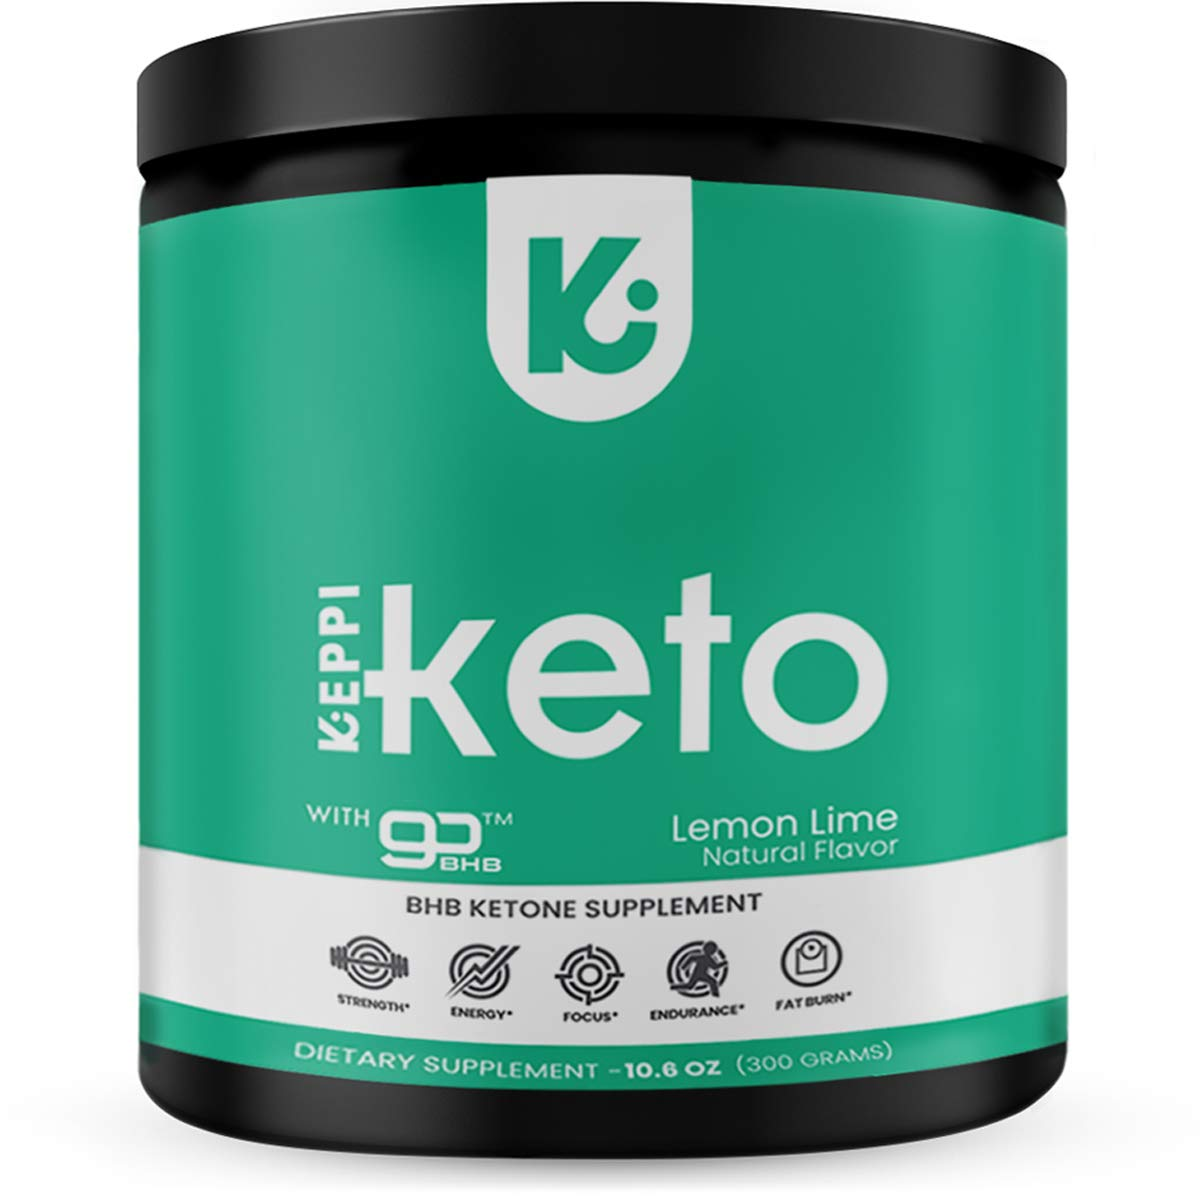 KEPPI Keto Exogenous Ketones Powder Supplement: Patented BHB Salts Formulated to Increase Energy, Burn Fat, Maintain Ketosis and Mental Focus on The Ketogenic Diet